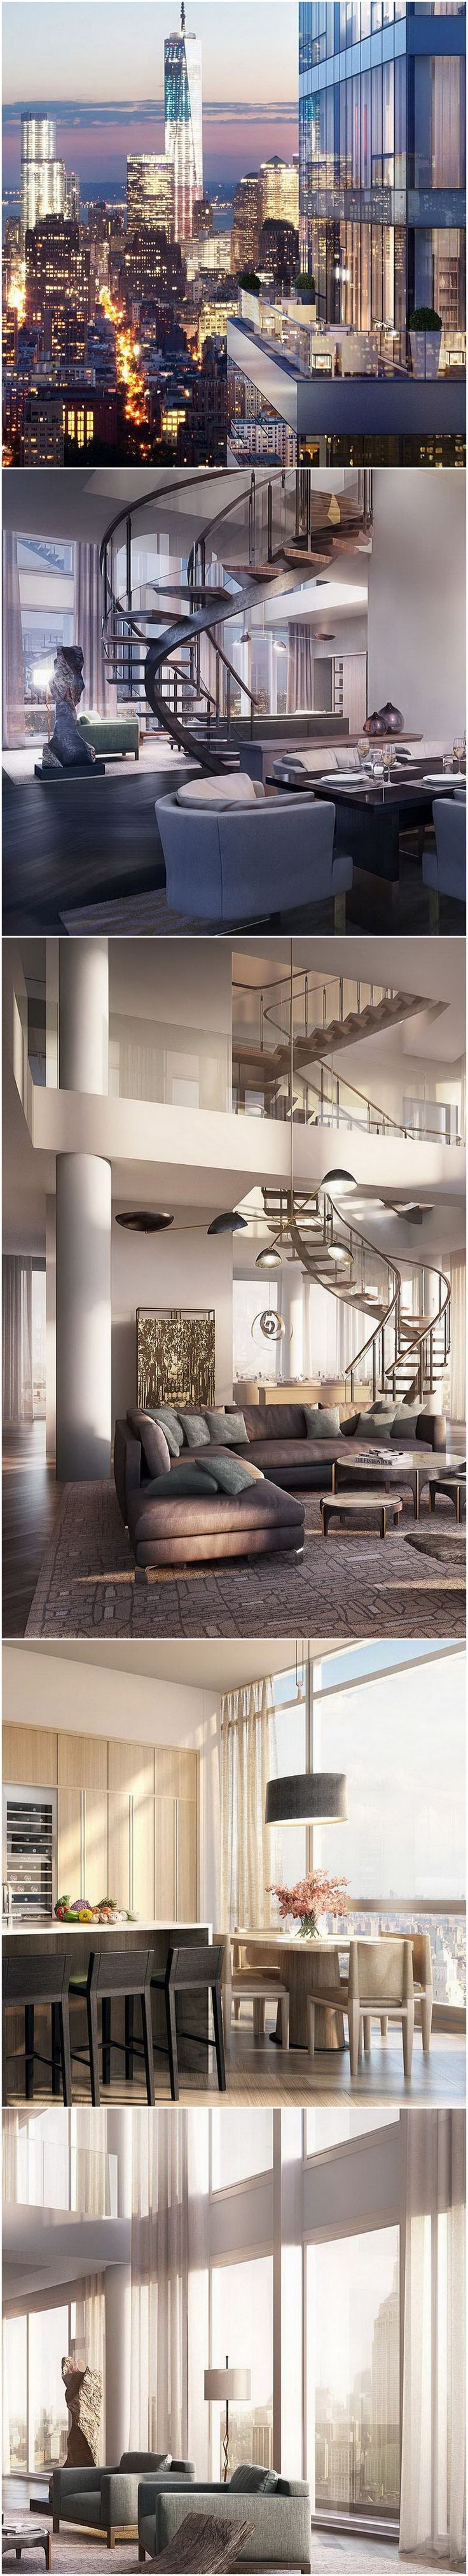 Find luxury apartments that can enhance your lifestyle. Learn what to look for in a luxury apartment on termin(ART)or.com  The Picture we use as a PIN here is from: http://blog.styleestate.com/style-estate-blog/rupert-mudrochs-new-ny-penthouse.html